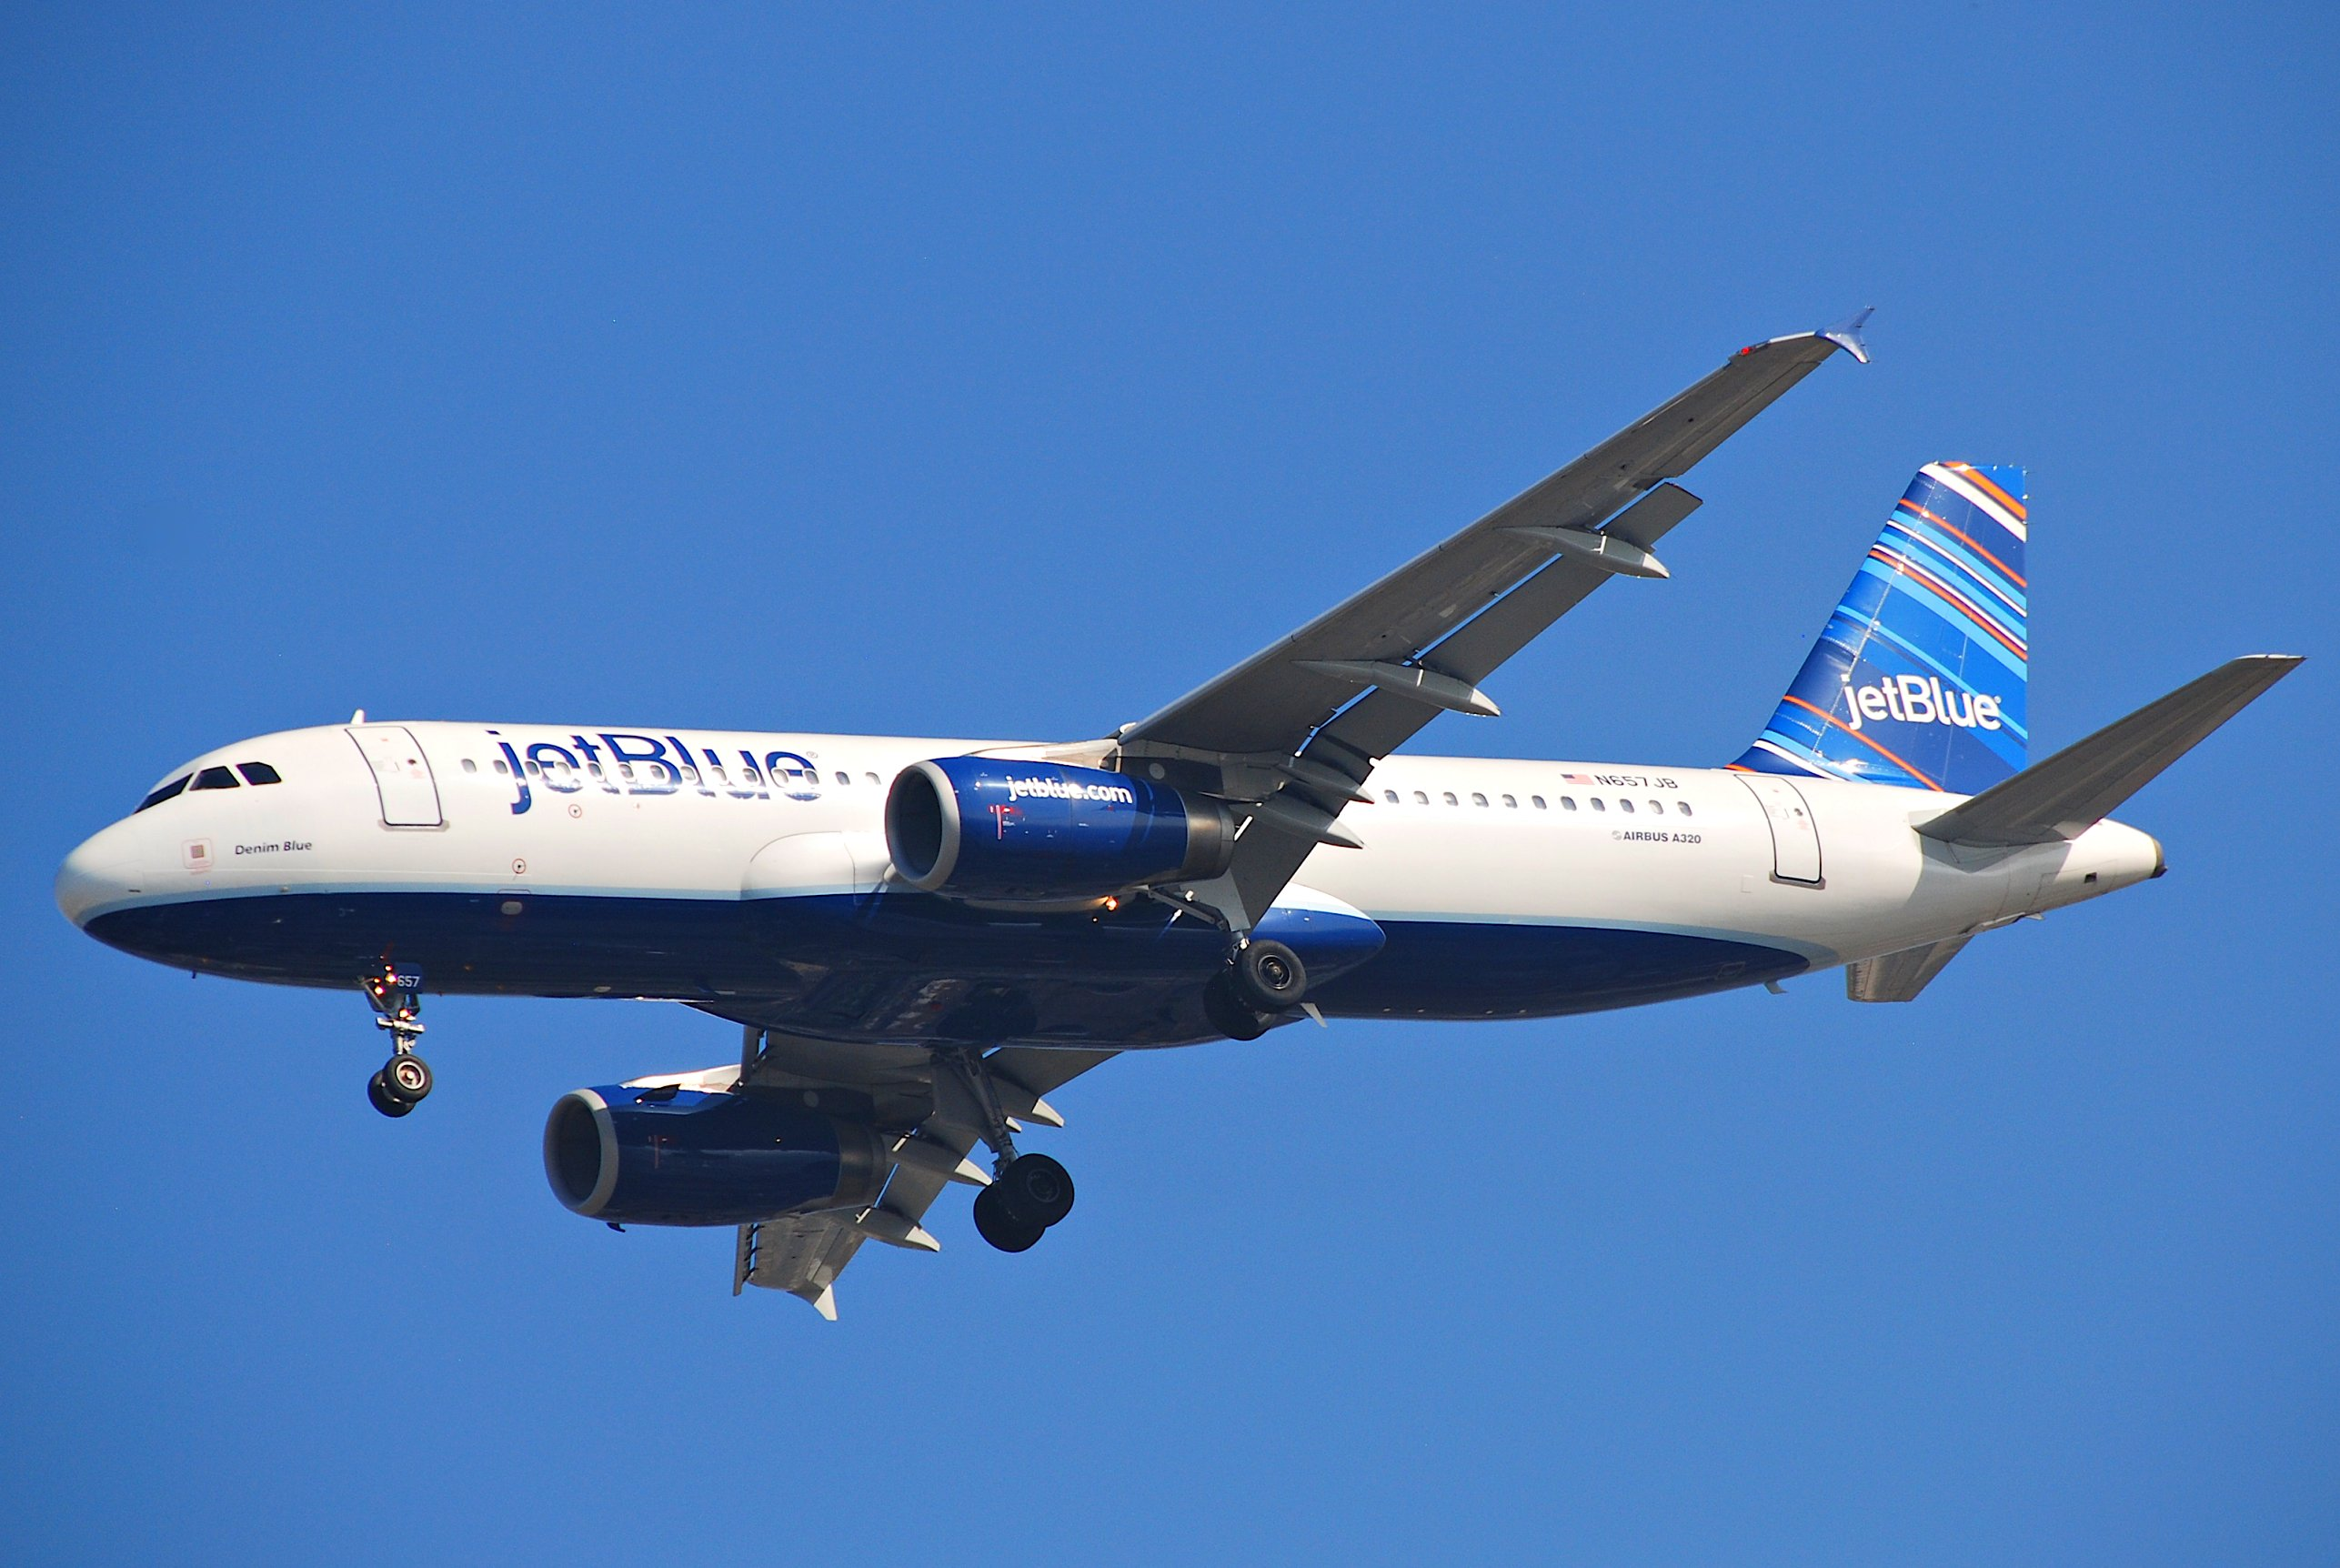 Jet Blue Flight From Laguardia To West Palm Beach Todaay